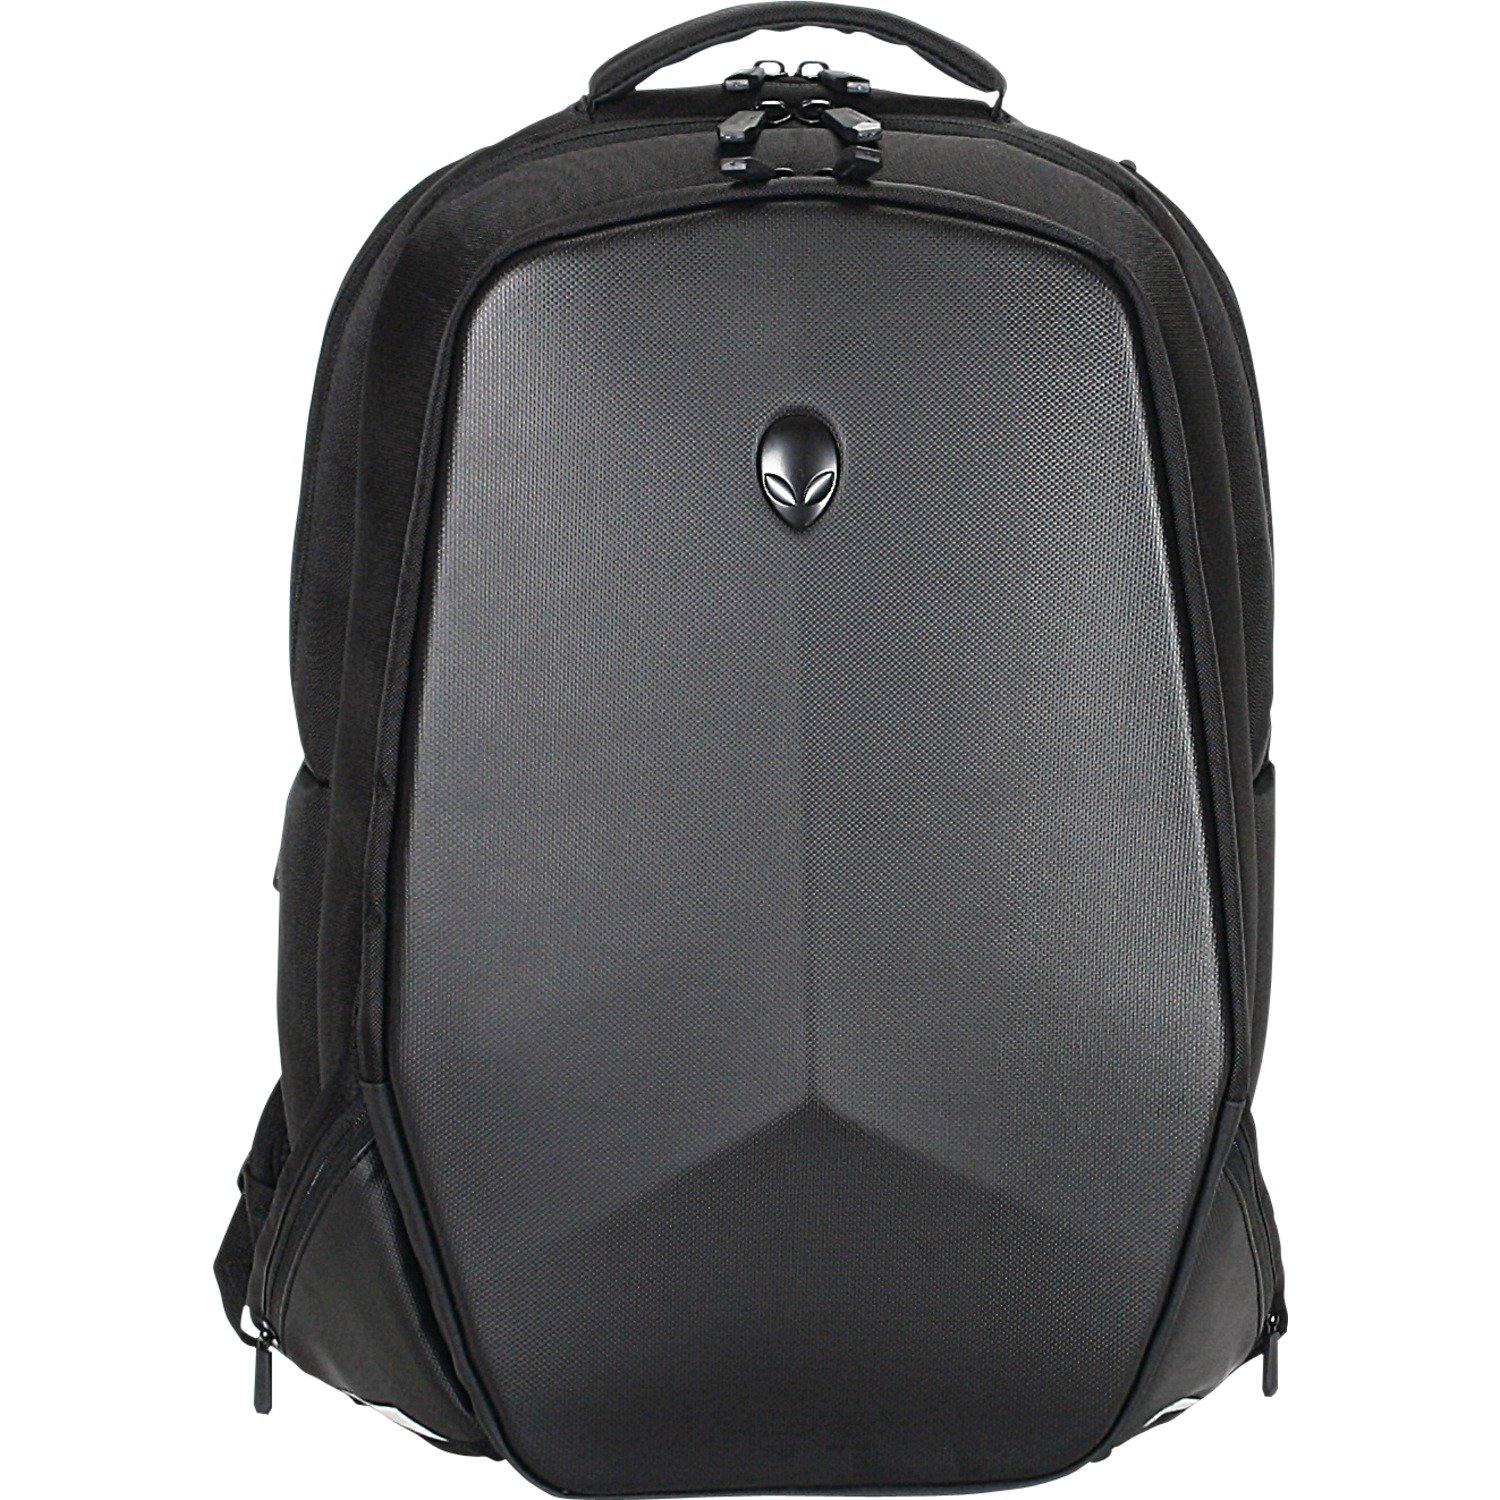 Alienware 18-Inch Vindicator Backpack (AWVBP18) [Discontinued by Manufacturer] by Mobile Edge